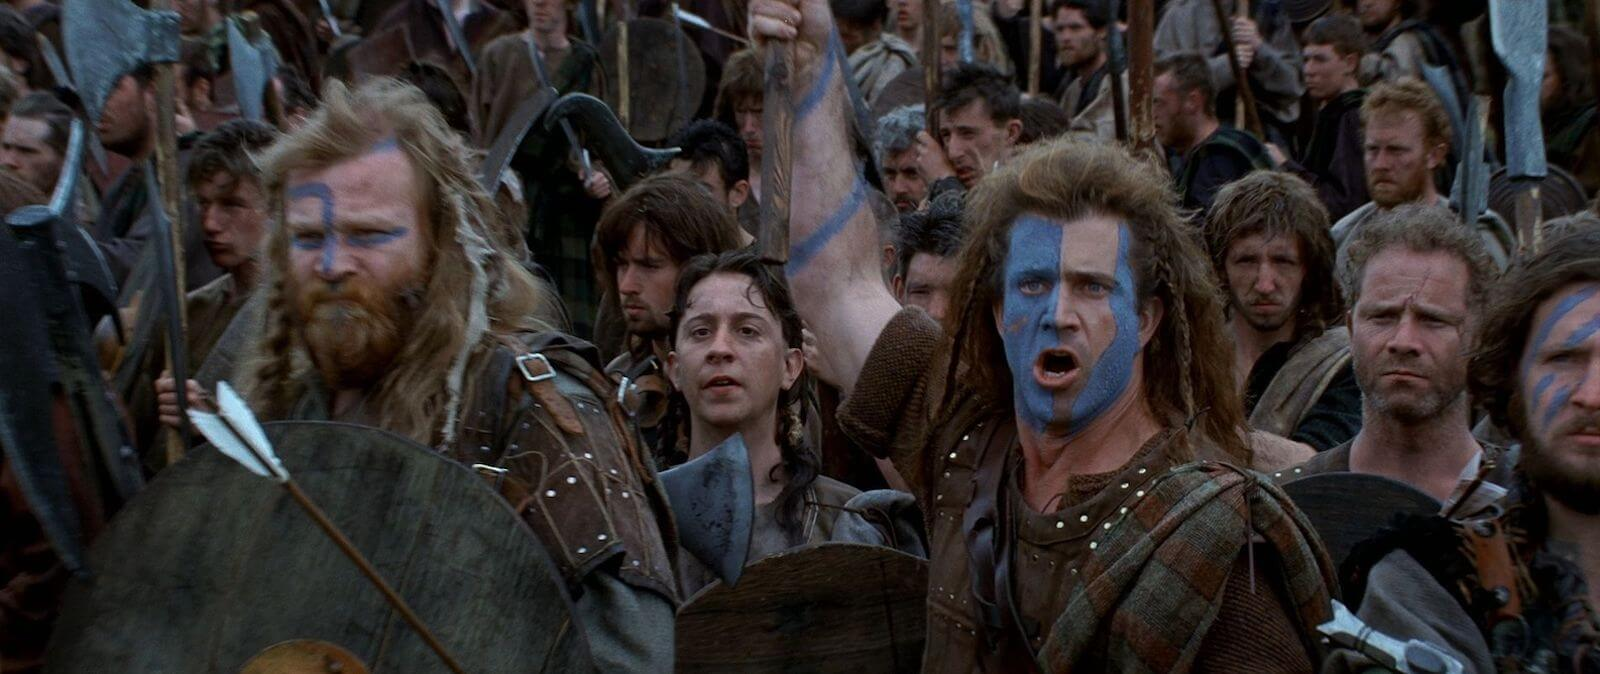 Casting Background Hacks Braveheart Extras